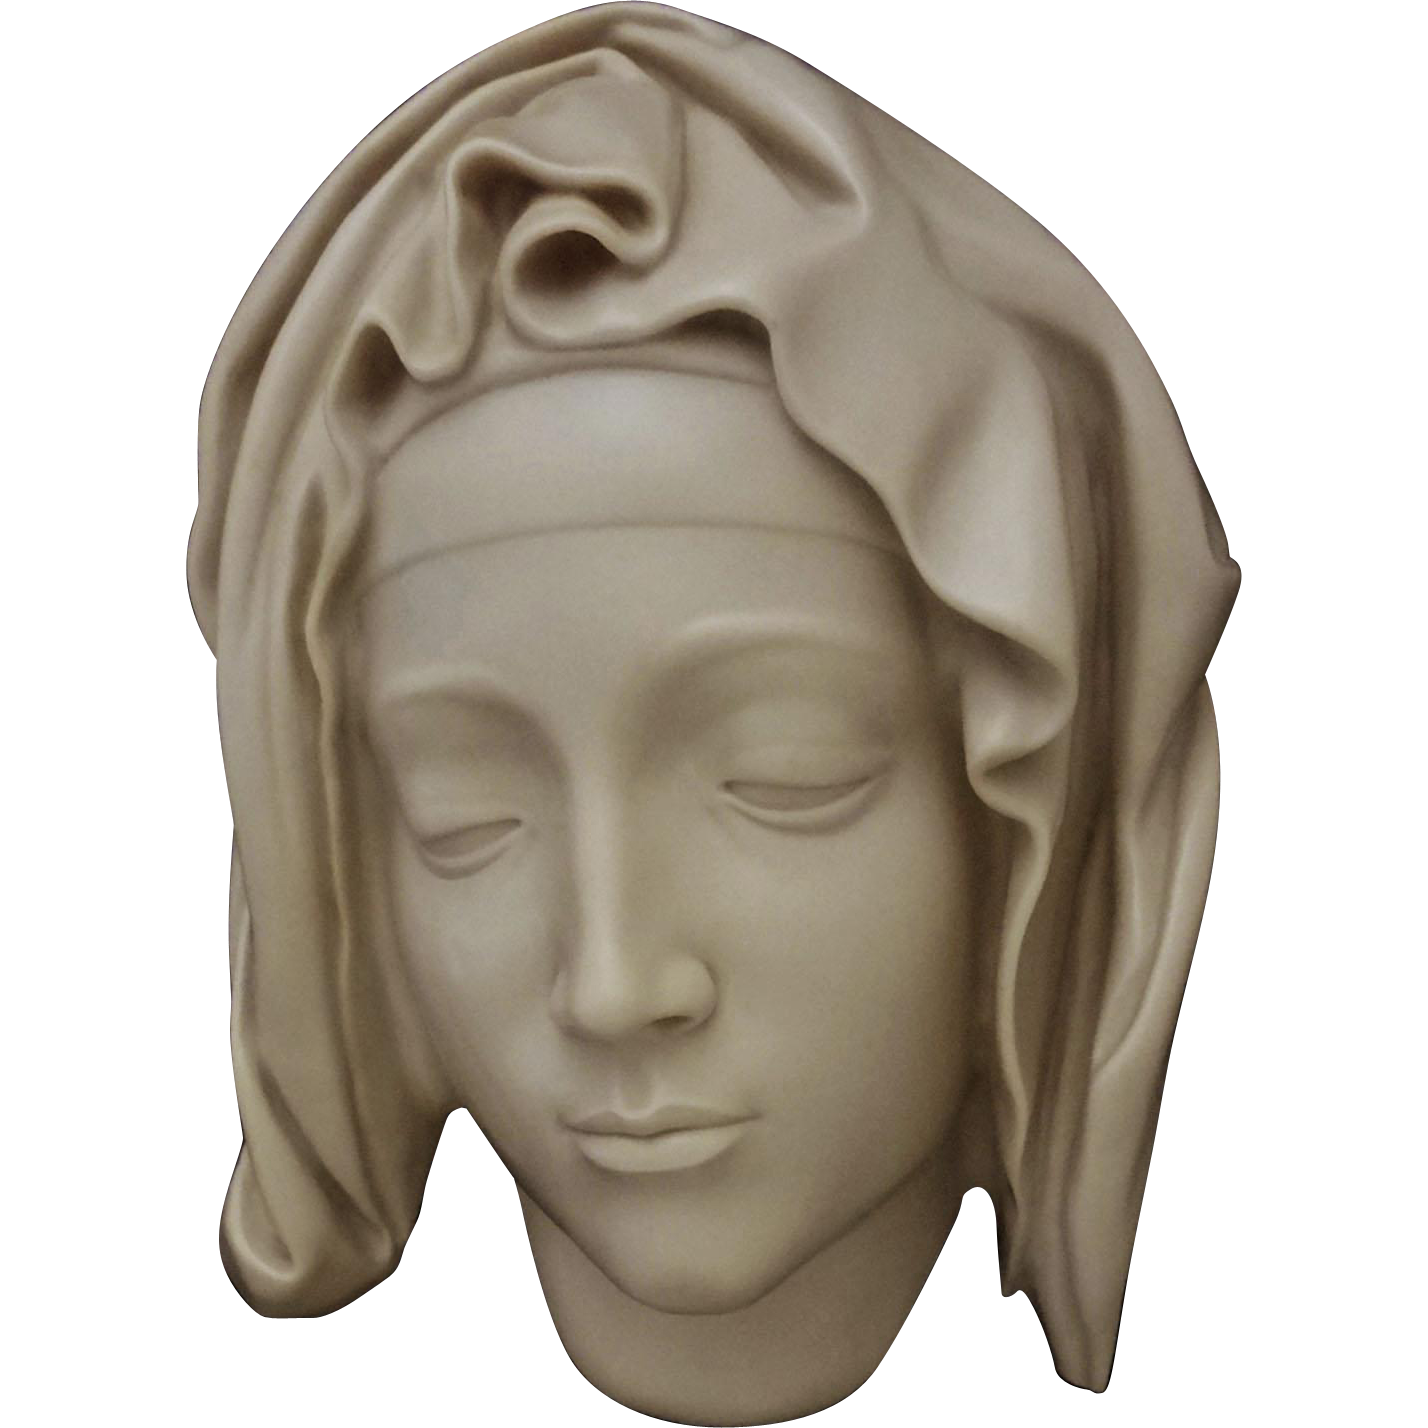 Head of the Virgin after detail from the Pieta by Michelangelo - 20th Century, USA